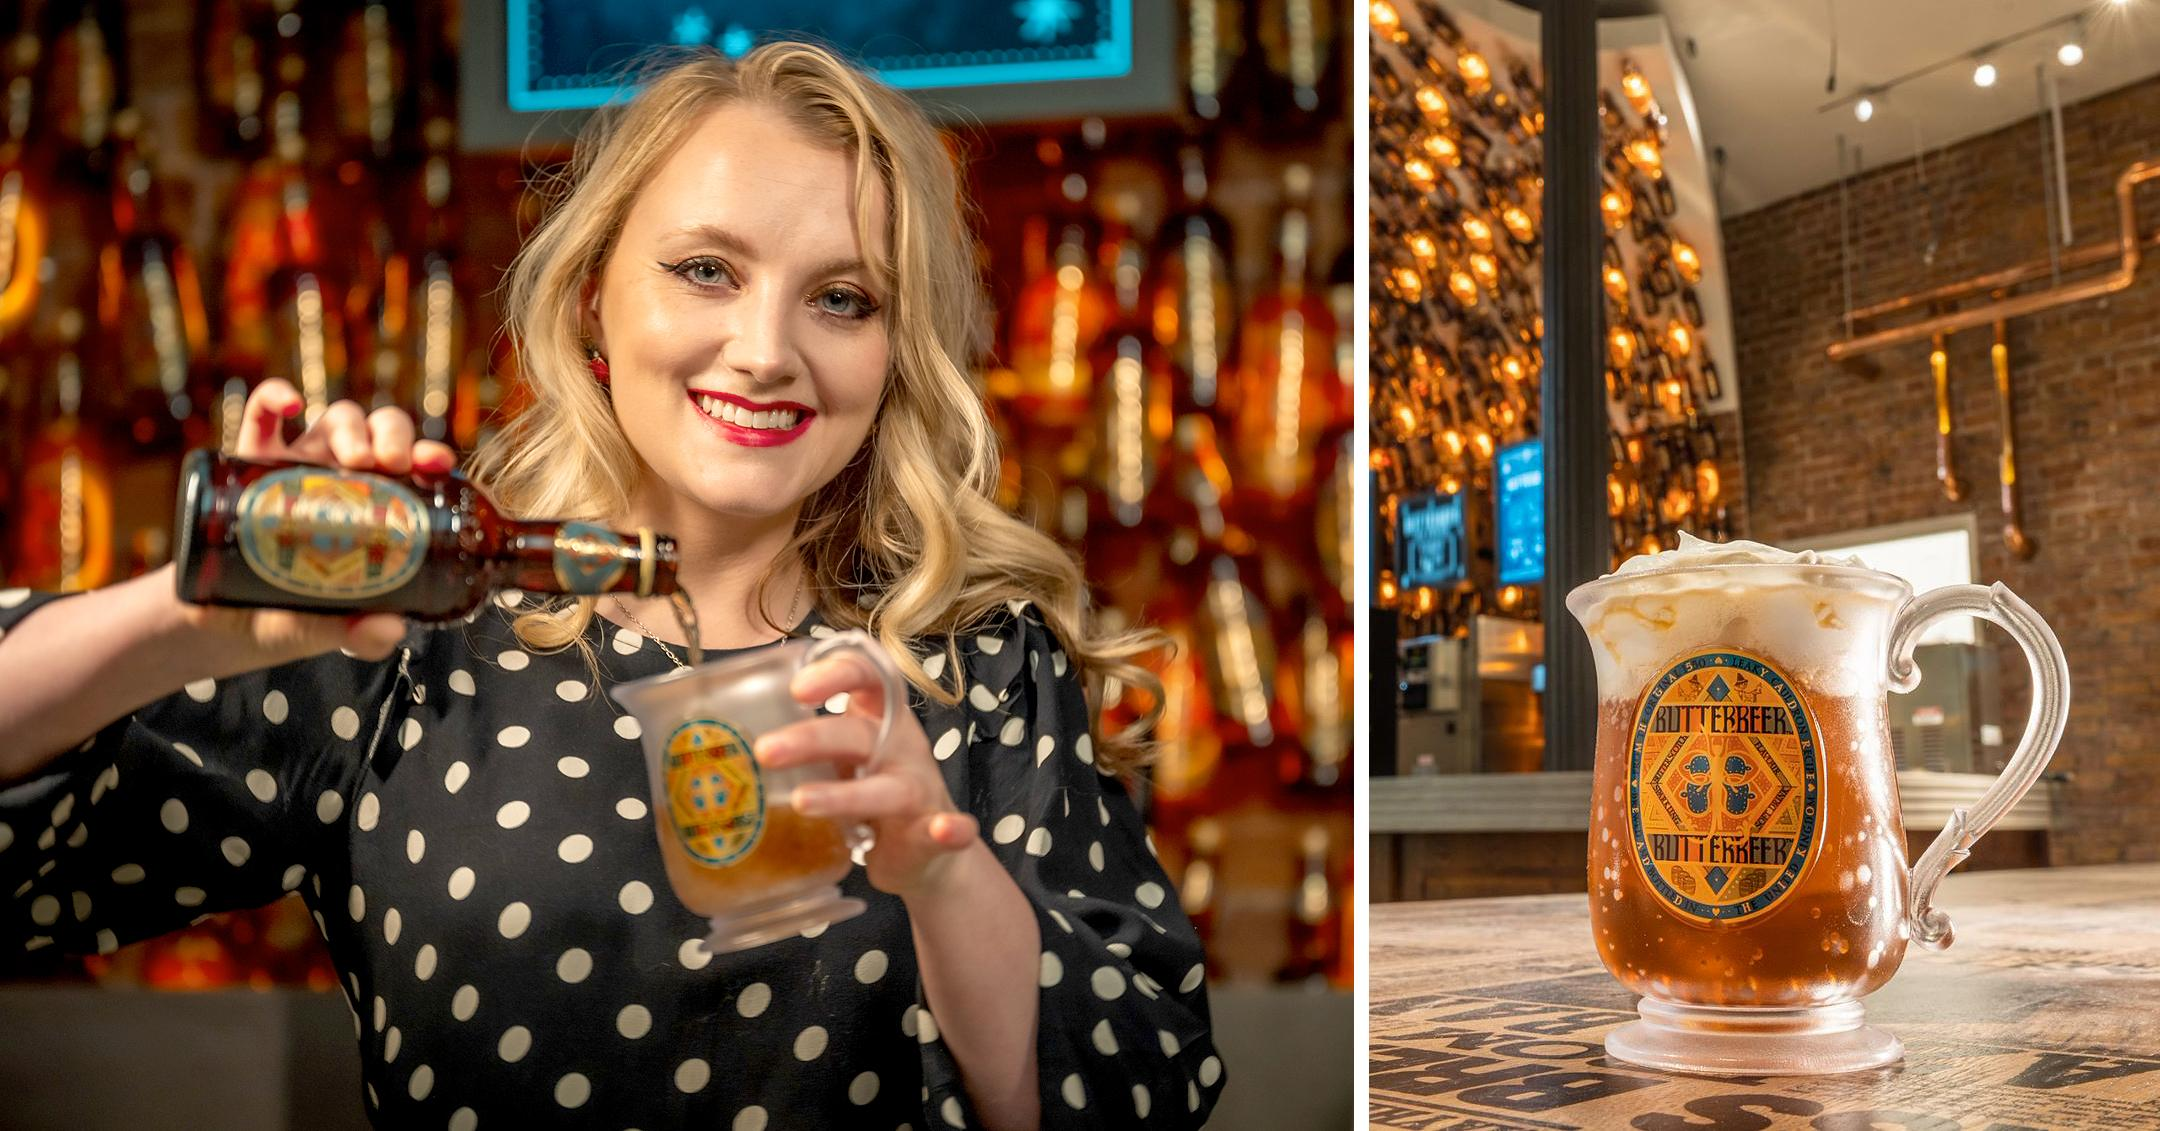 harry potter flagship store in nyc includes butterbeer bar drink the famous sip